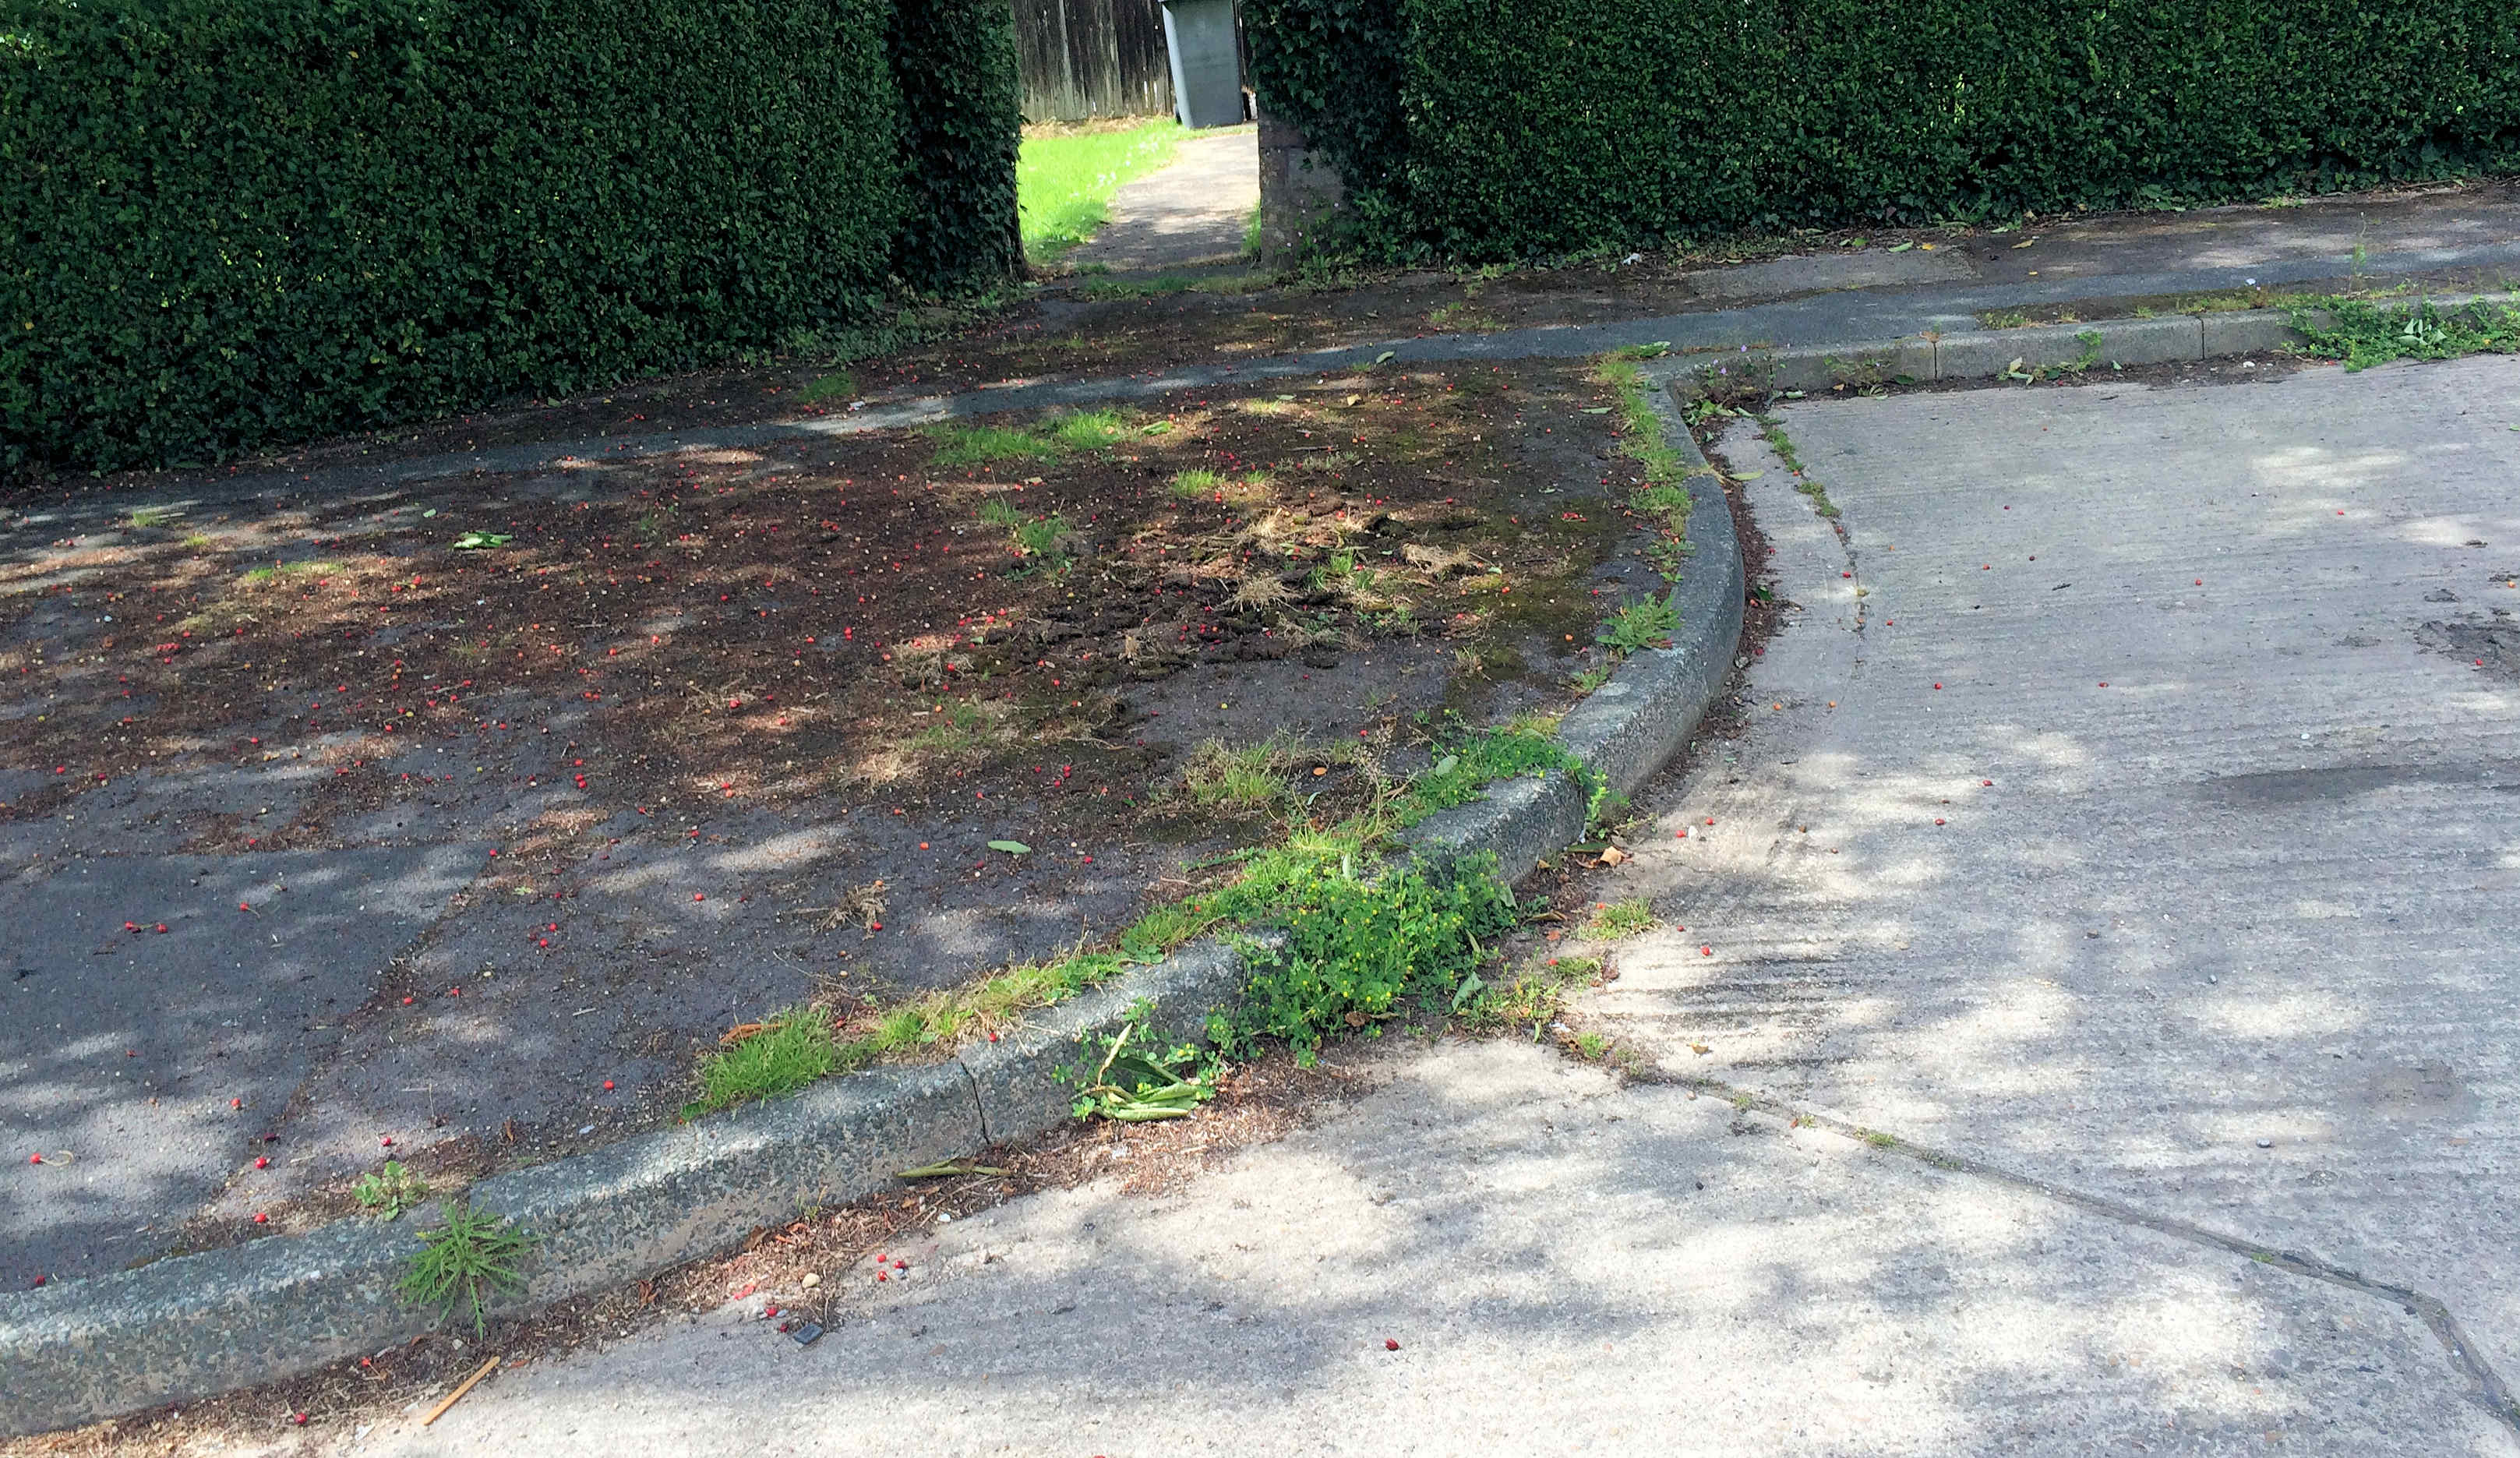 Seems the weed growth on footpaths in Walton Place hasn't received attention yet. We've asked for the weedkilling team to return